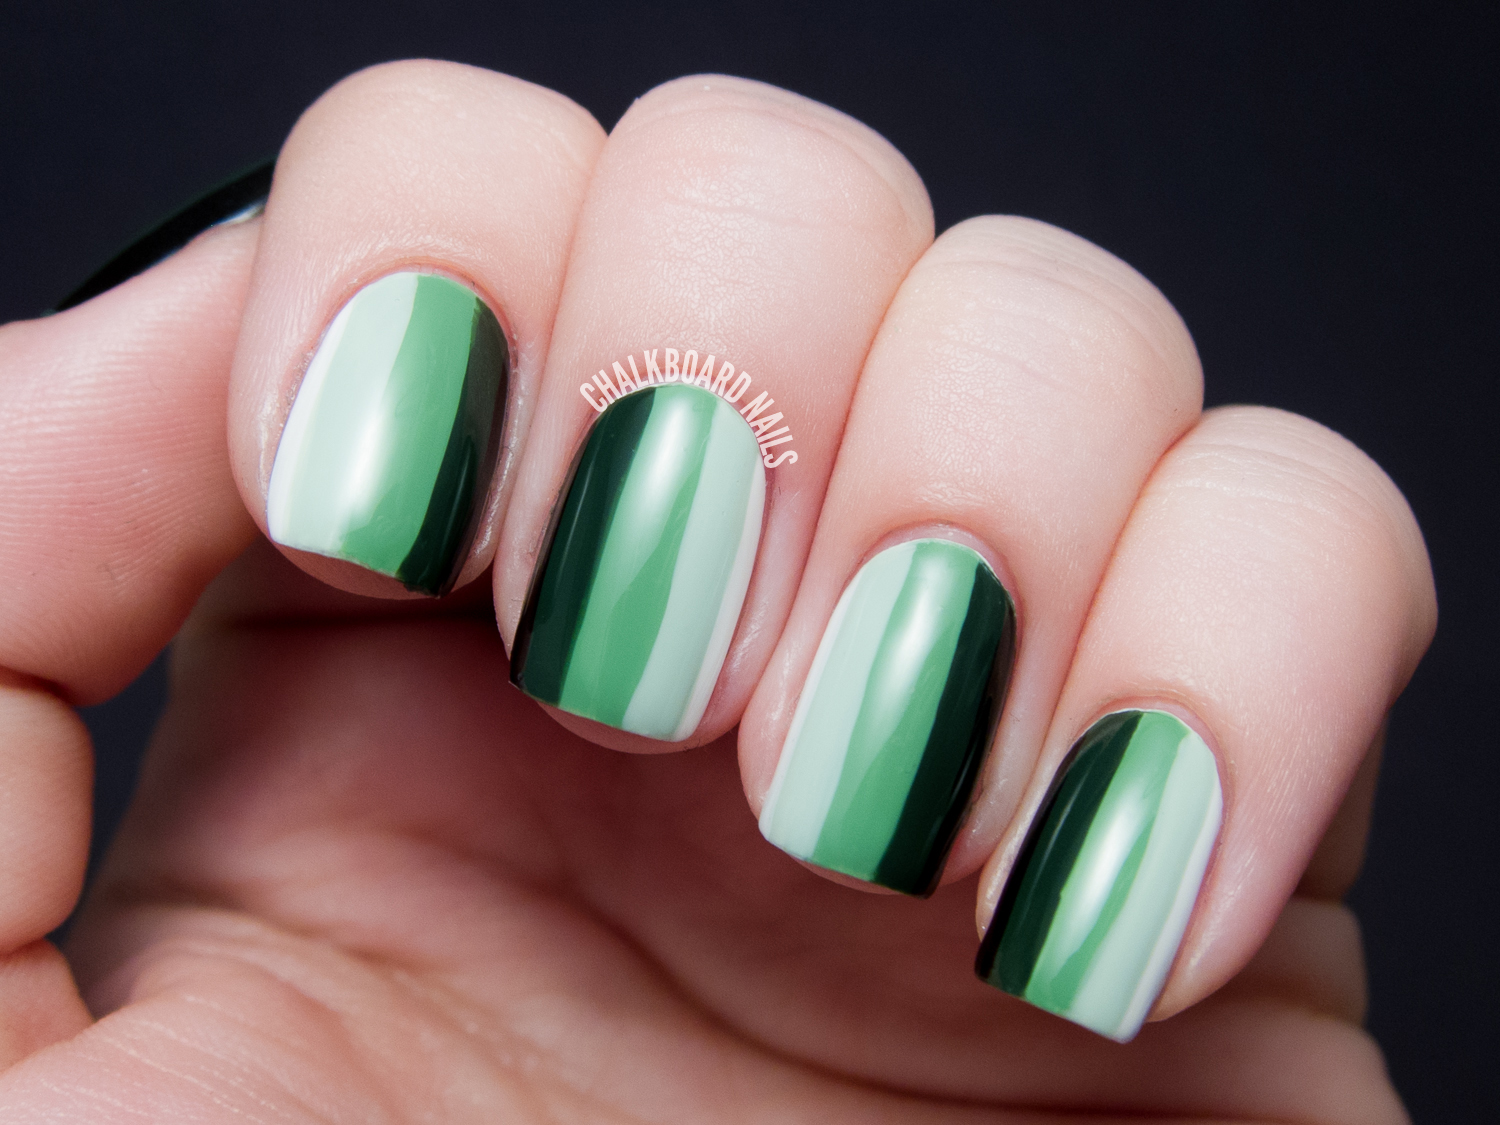 31DC2013 Day 12: Green Ombre Stripes | Chalkboard Nails | Nail Art Blog